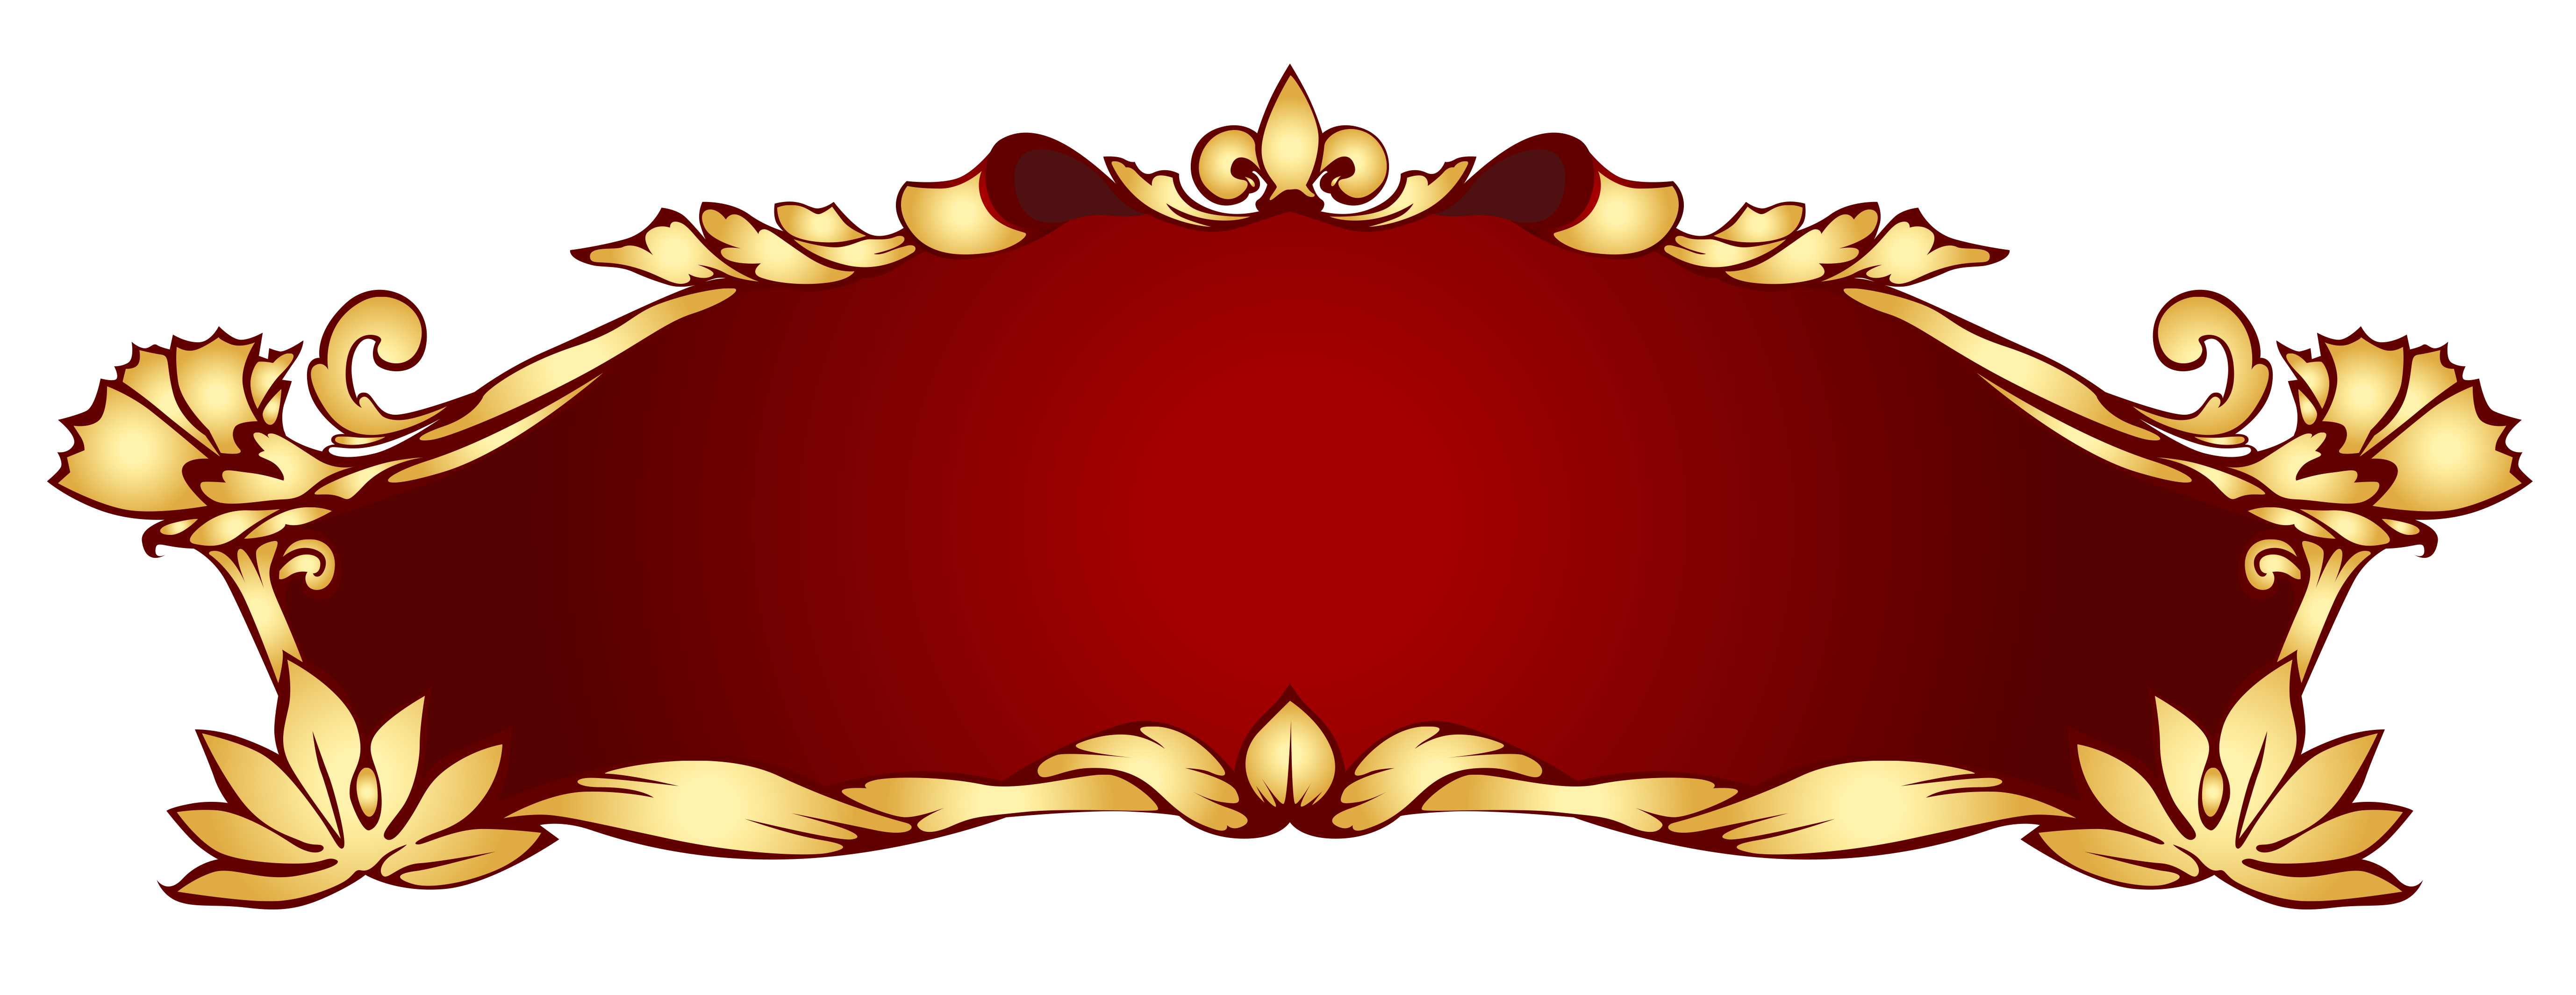 Transparent red deco banner. Medieval clipart ribbon jpg royalty free download